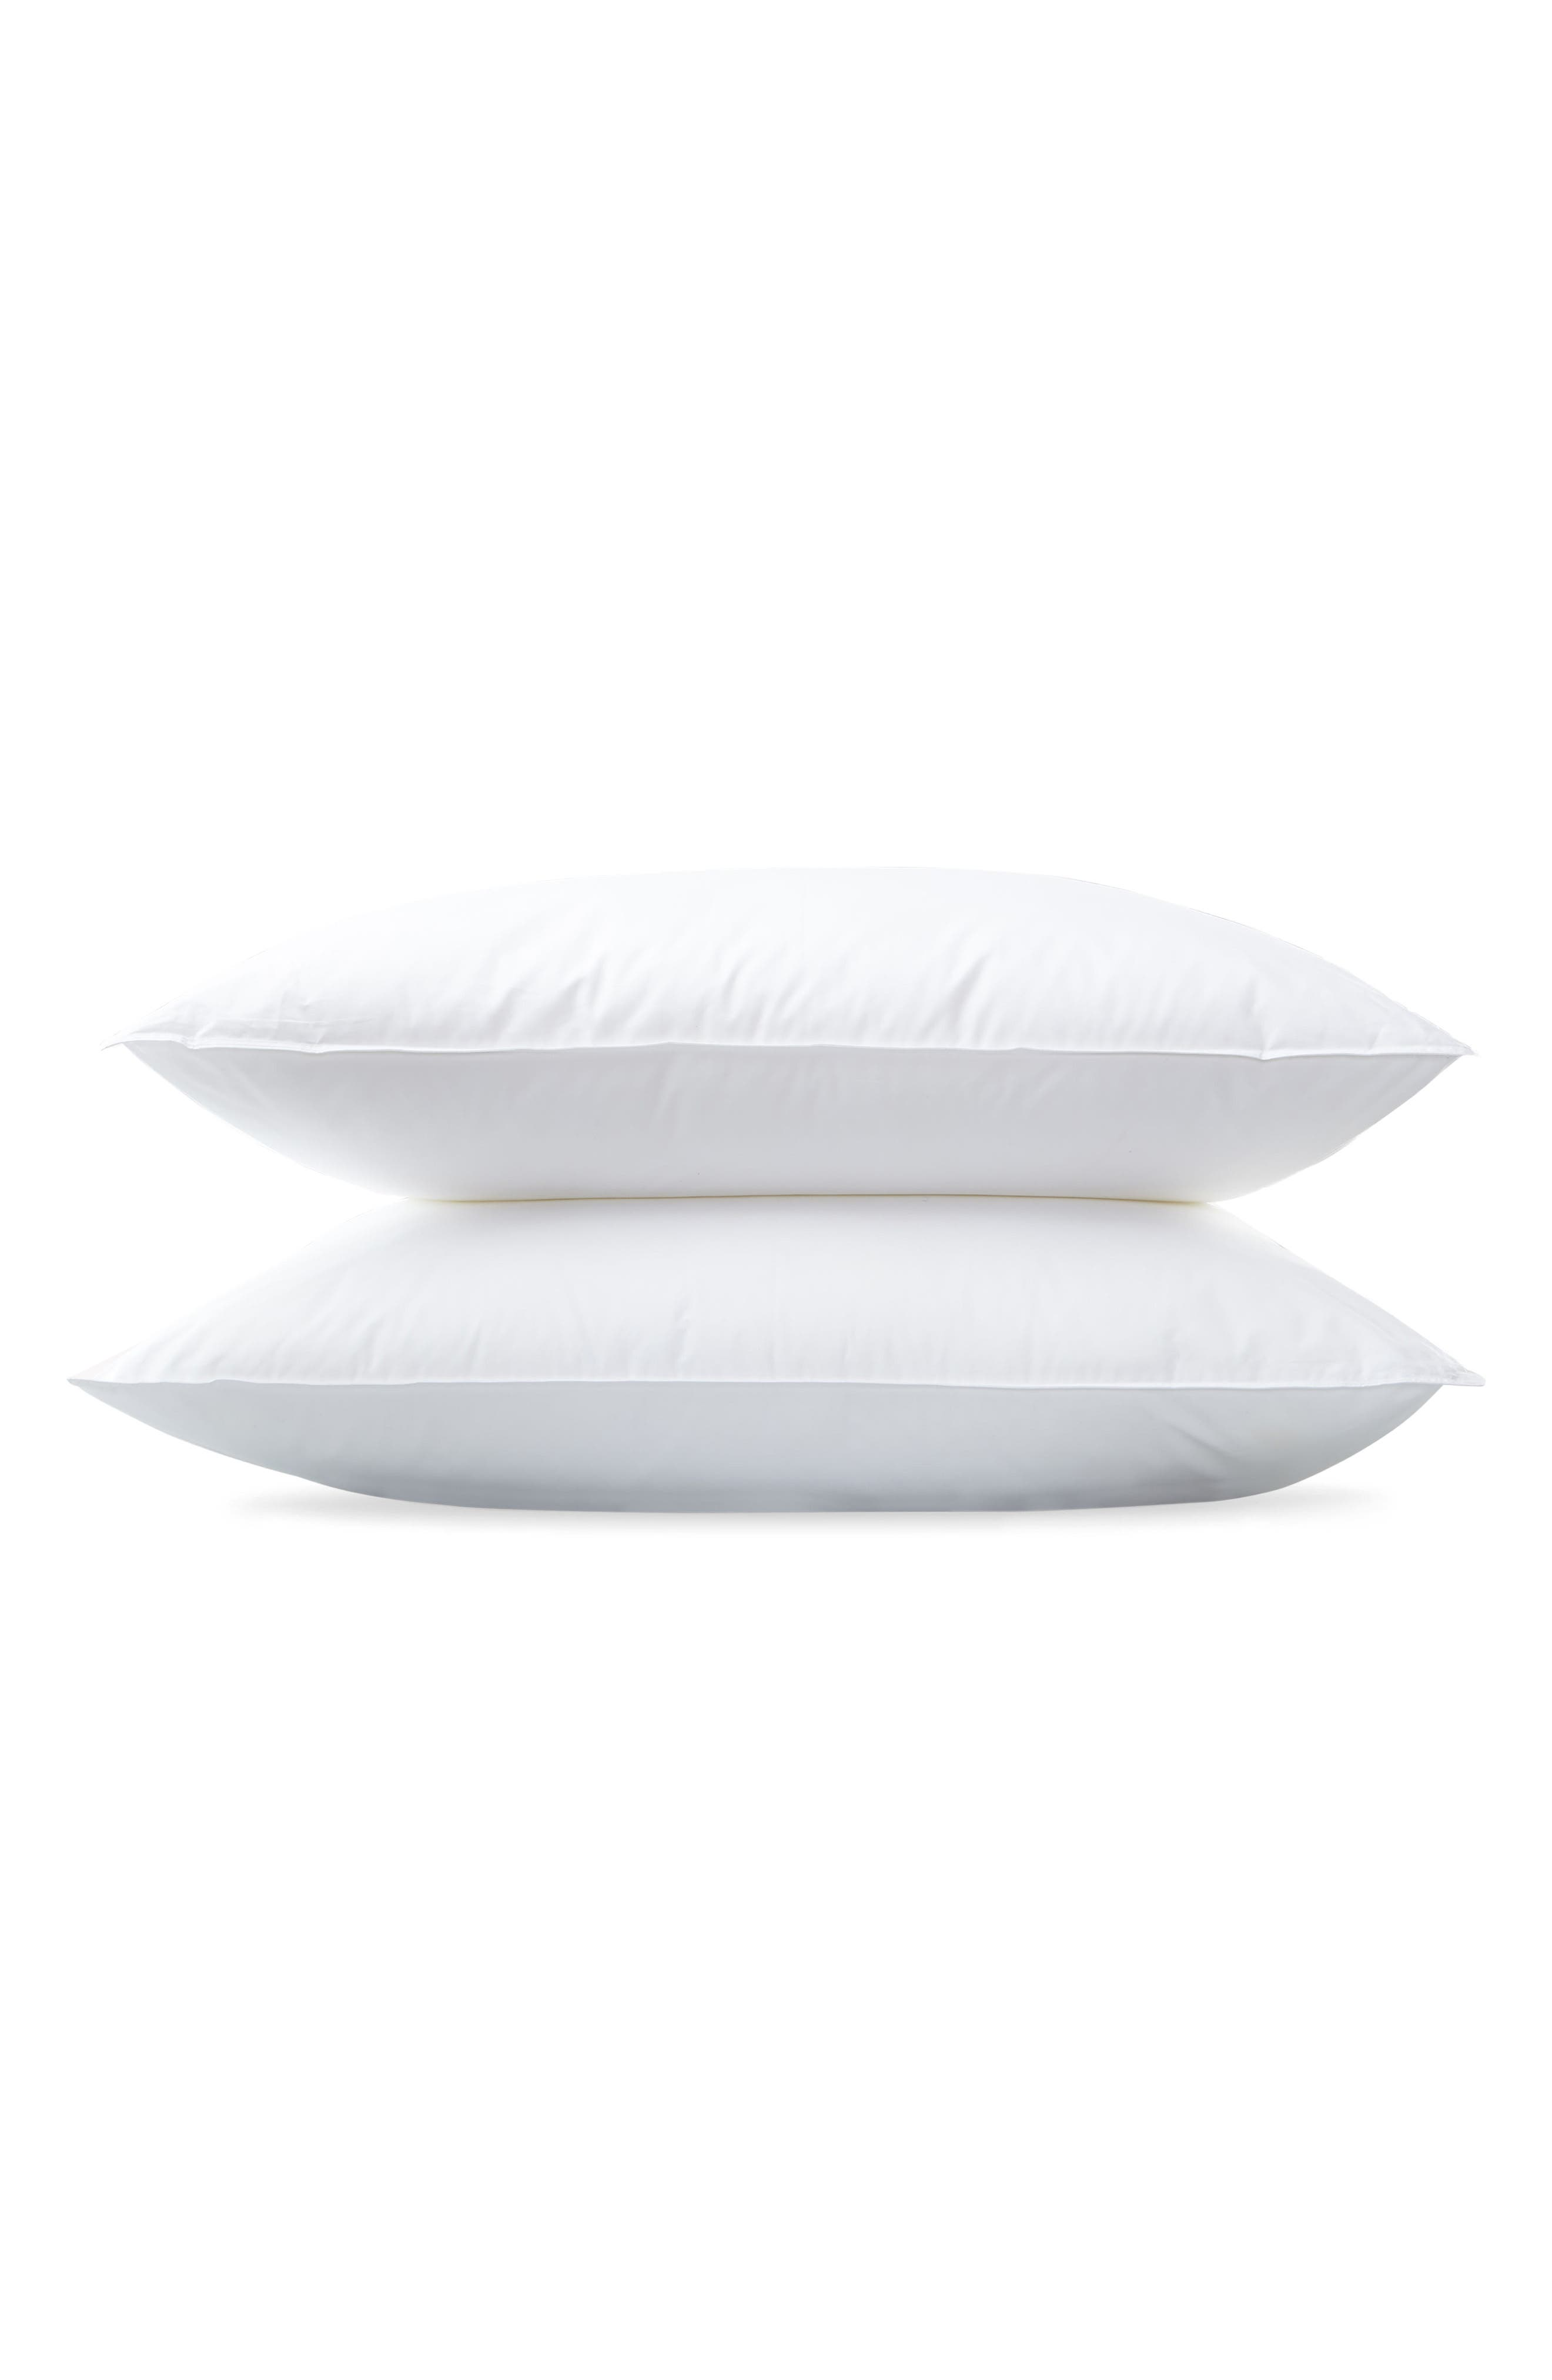 Montreux Three-Chamber 600 Fill Power Down & Feather 280 Thread Count Pillow,                         Main,                         color, WHITE